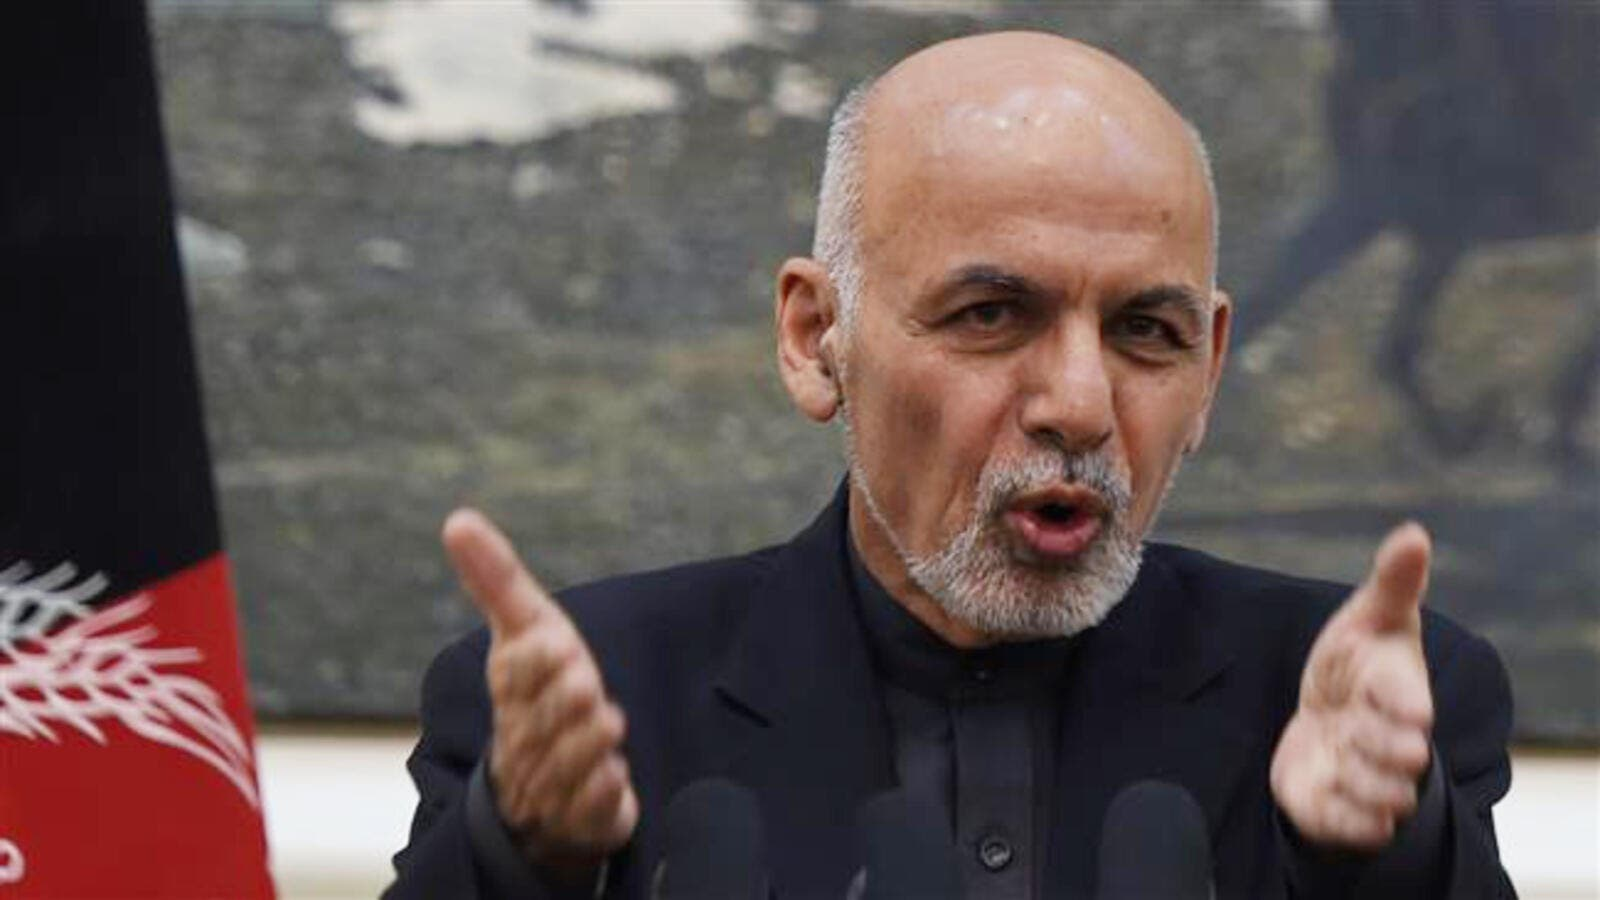 Afghan President Ashraf Ghani addresses a press conference at the Presidential Palace in Kabul on December 31, 2015. (AFP/File)